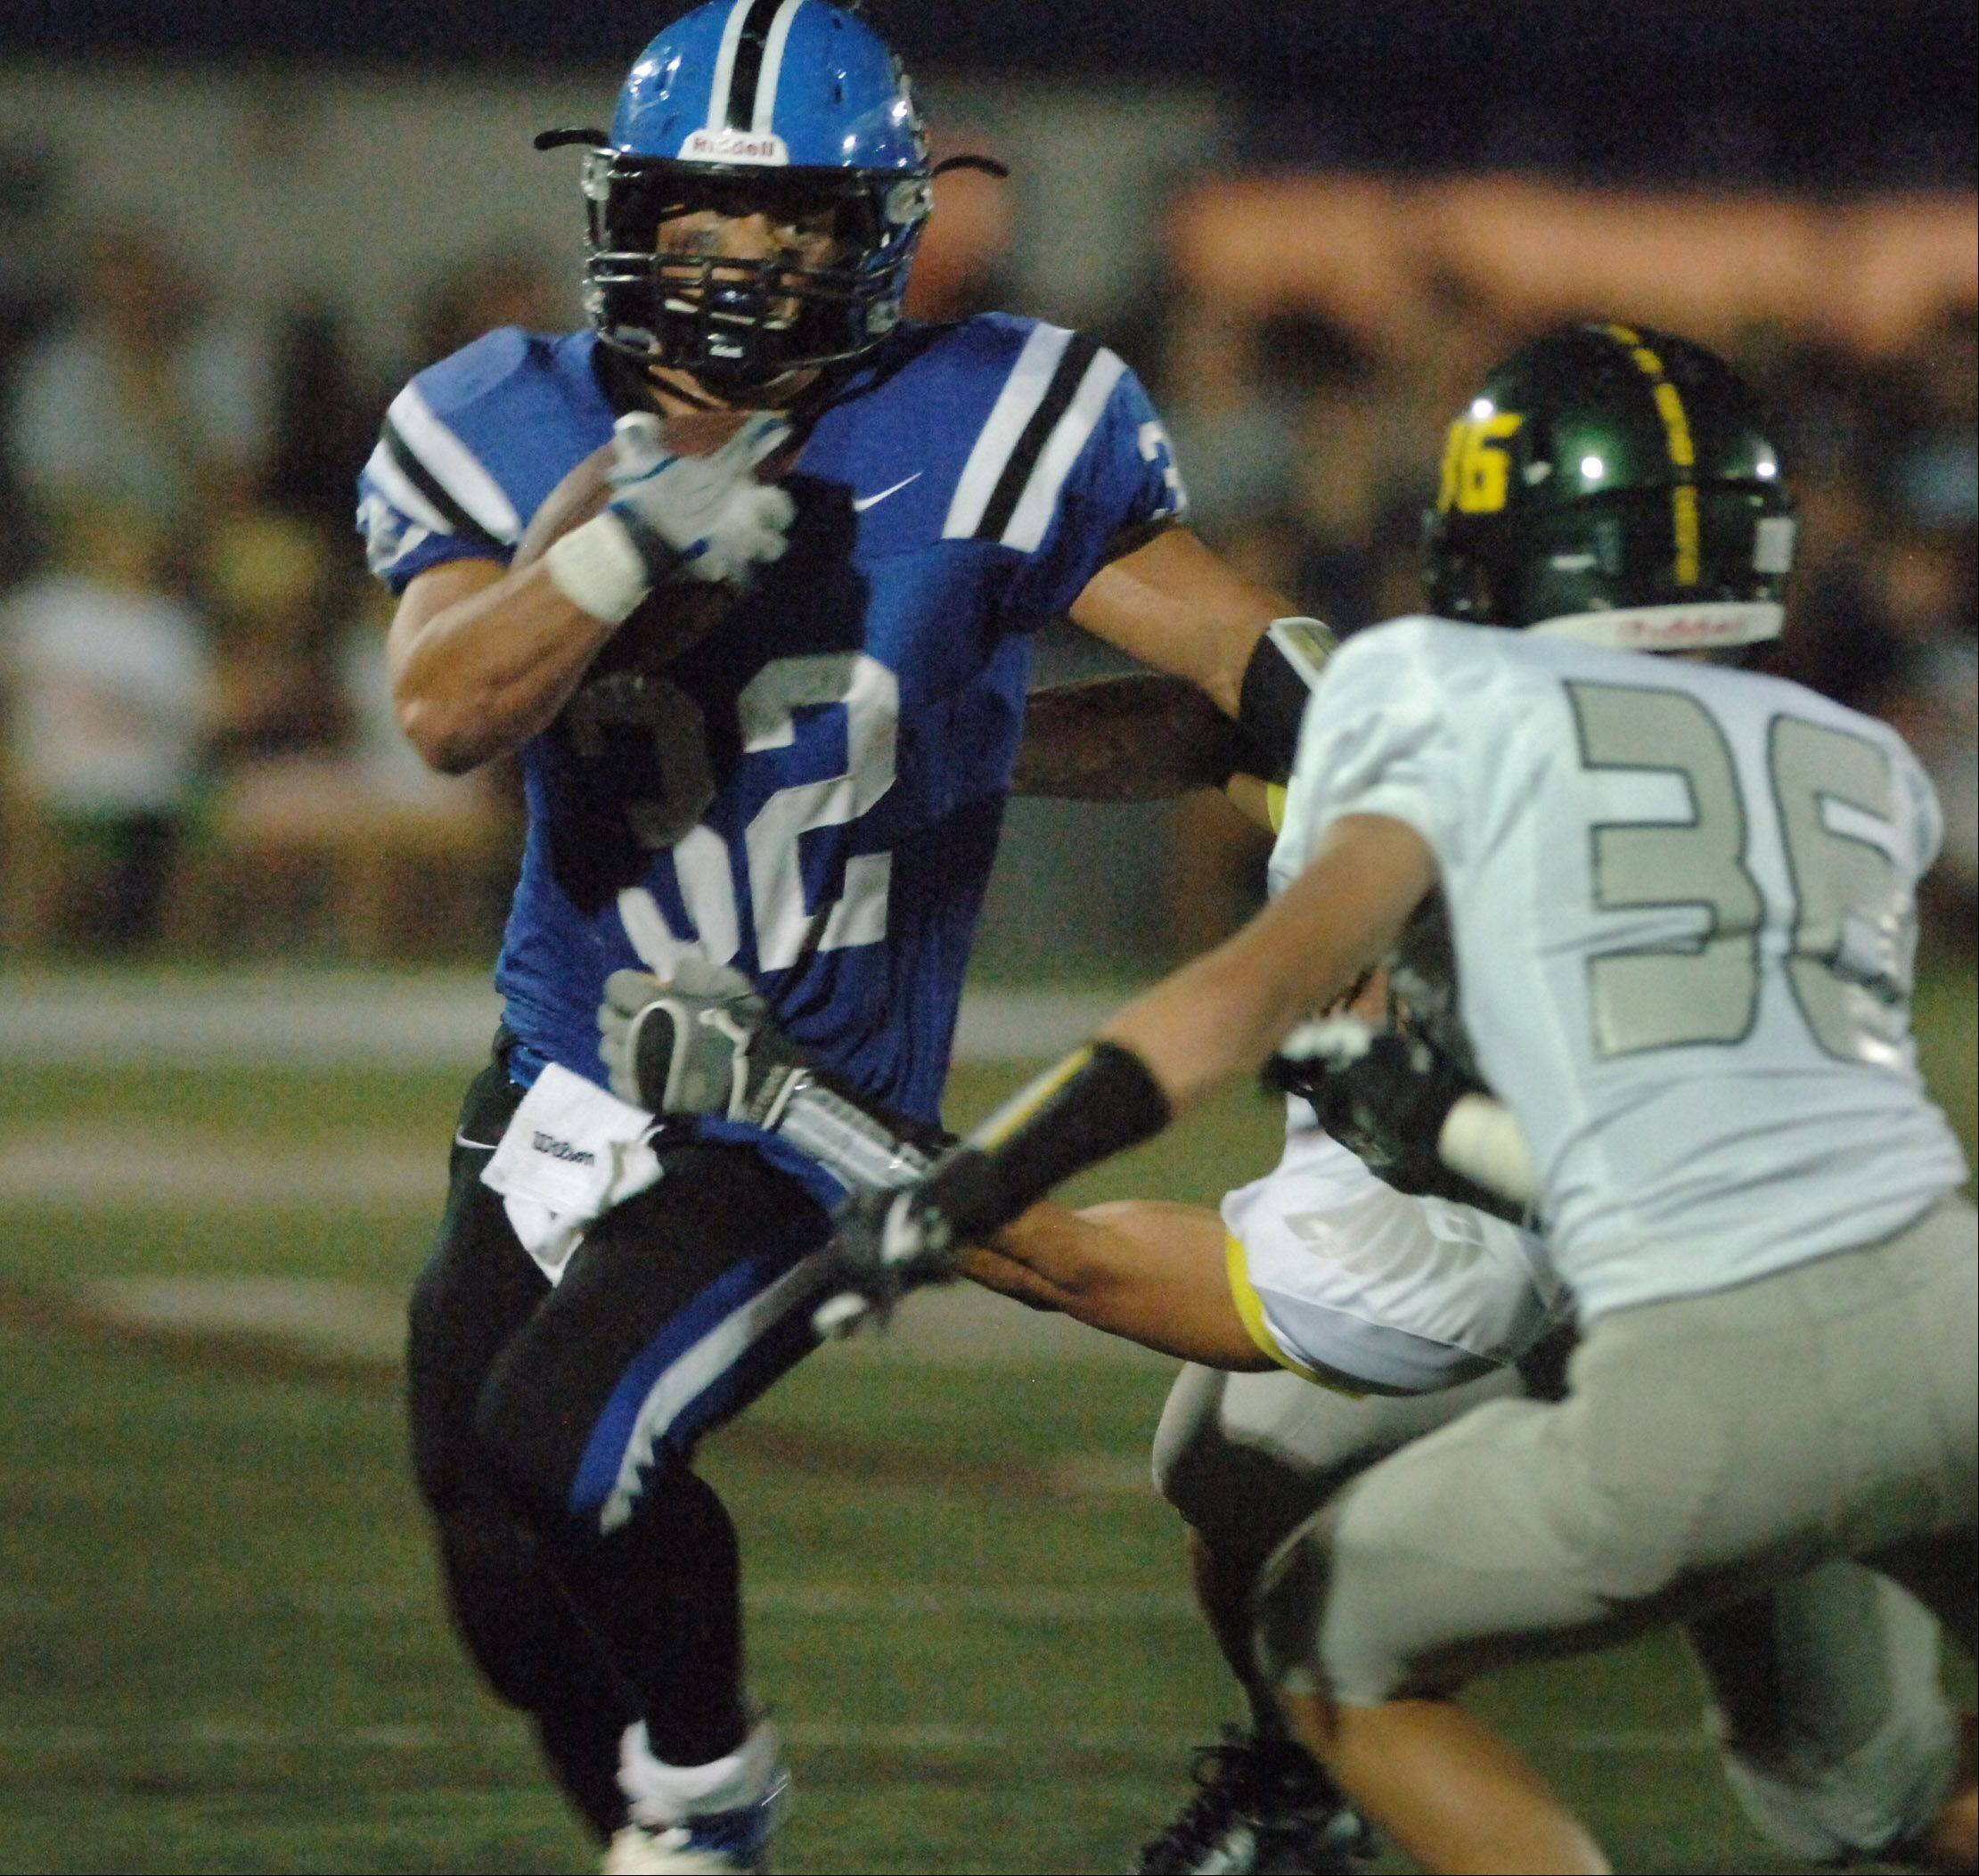 Lake Zurich's Connor Schrader looks for some running room against Fremd.